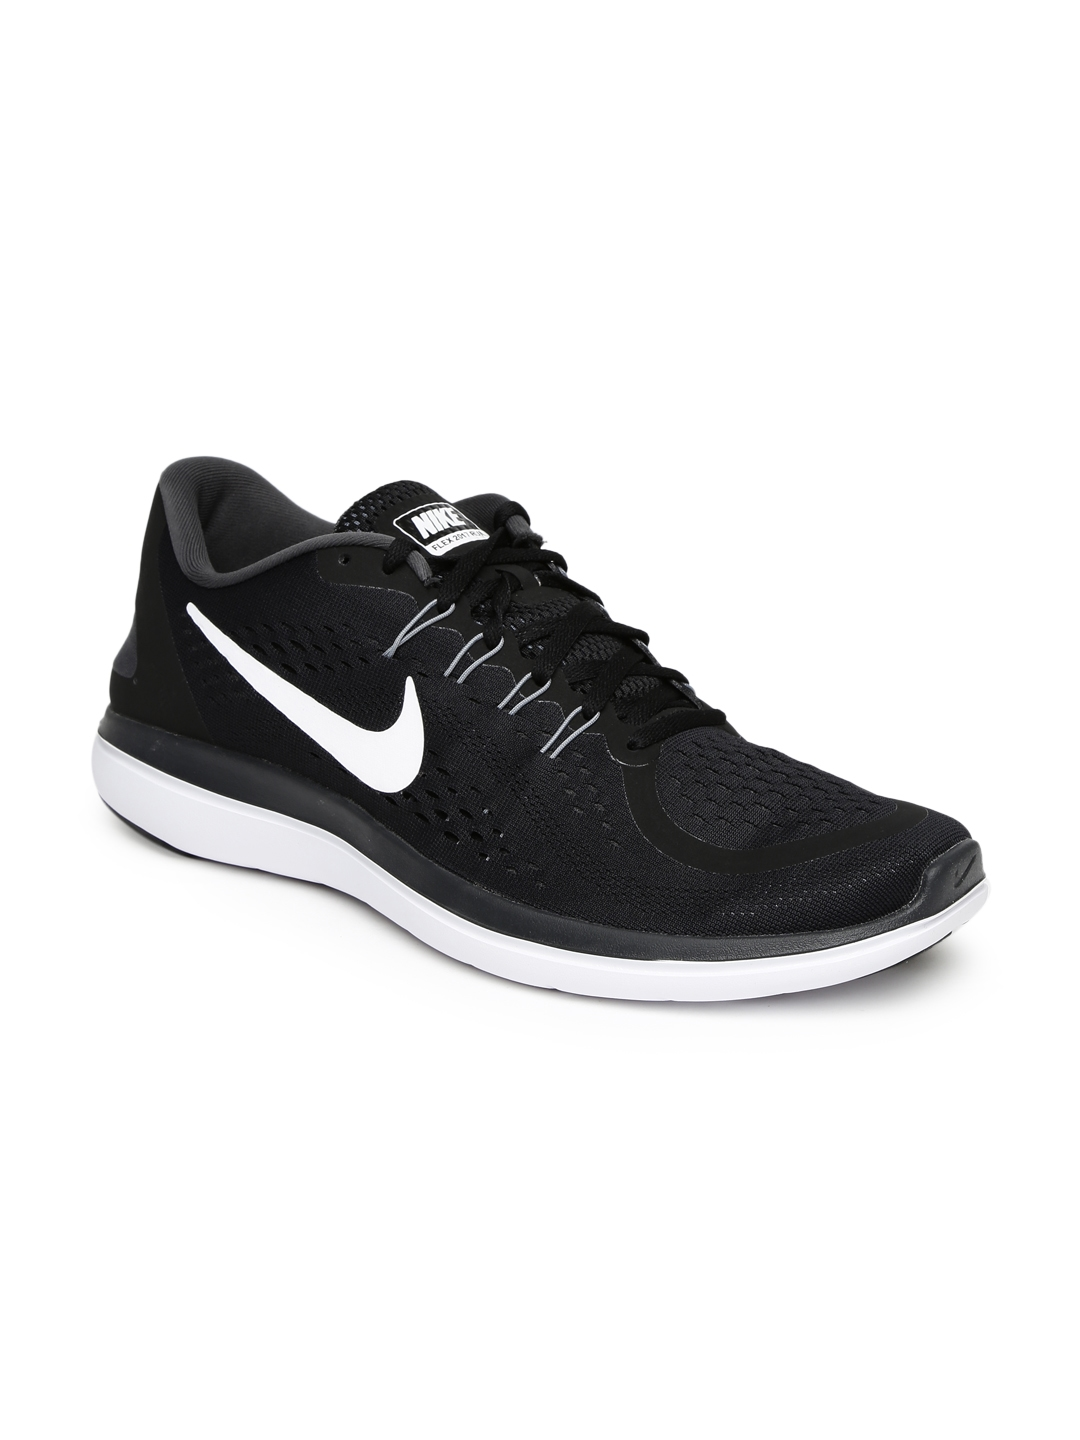 Buy Nike Free Run Shoes